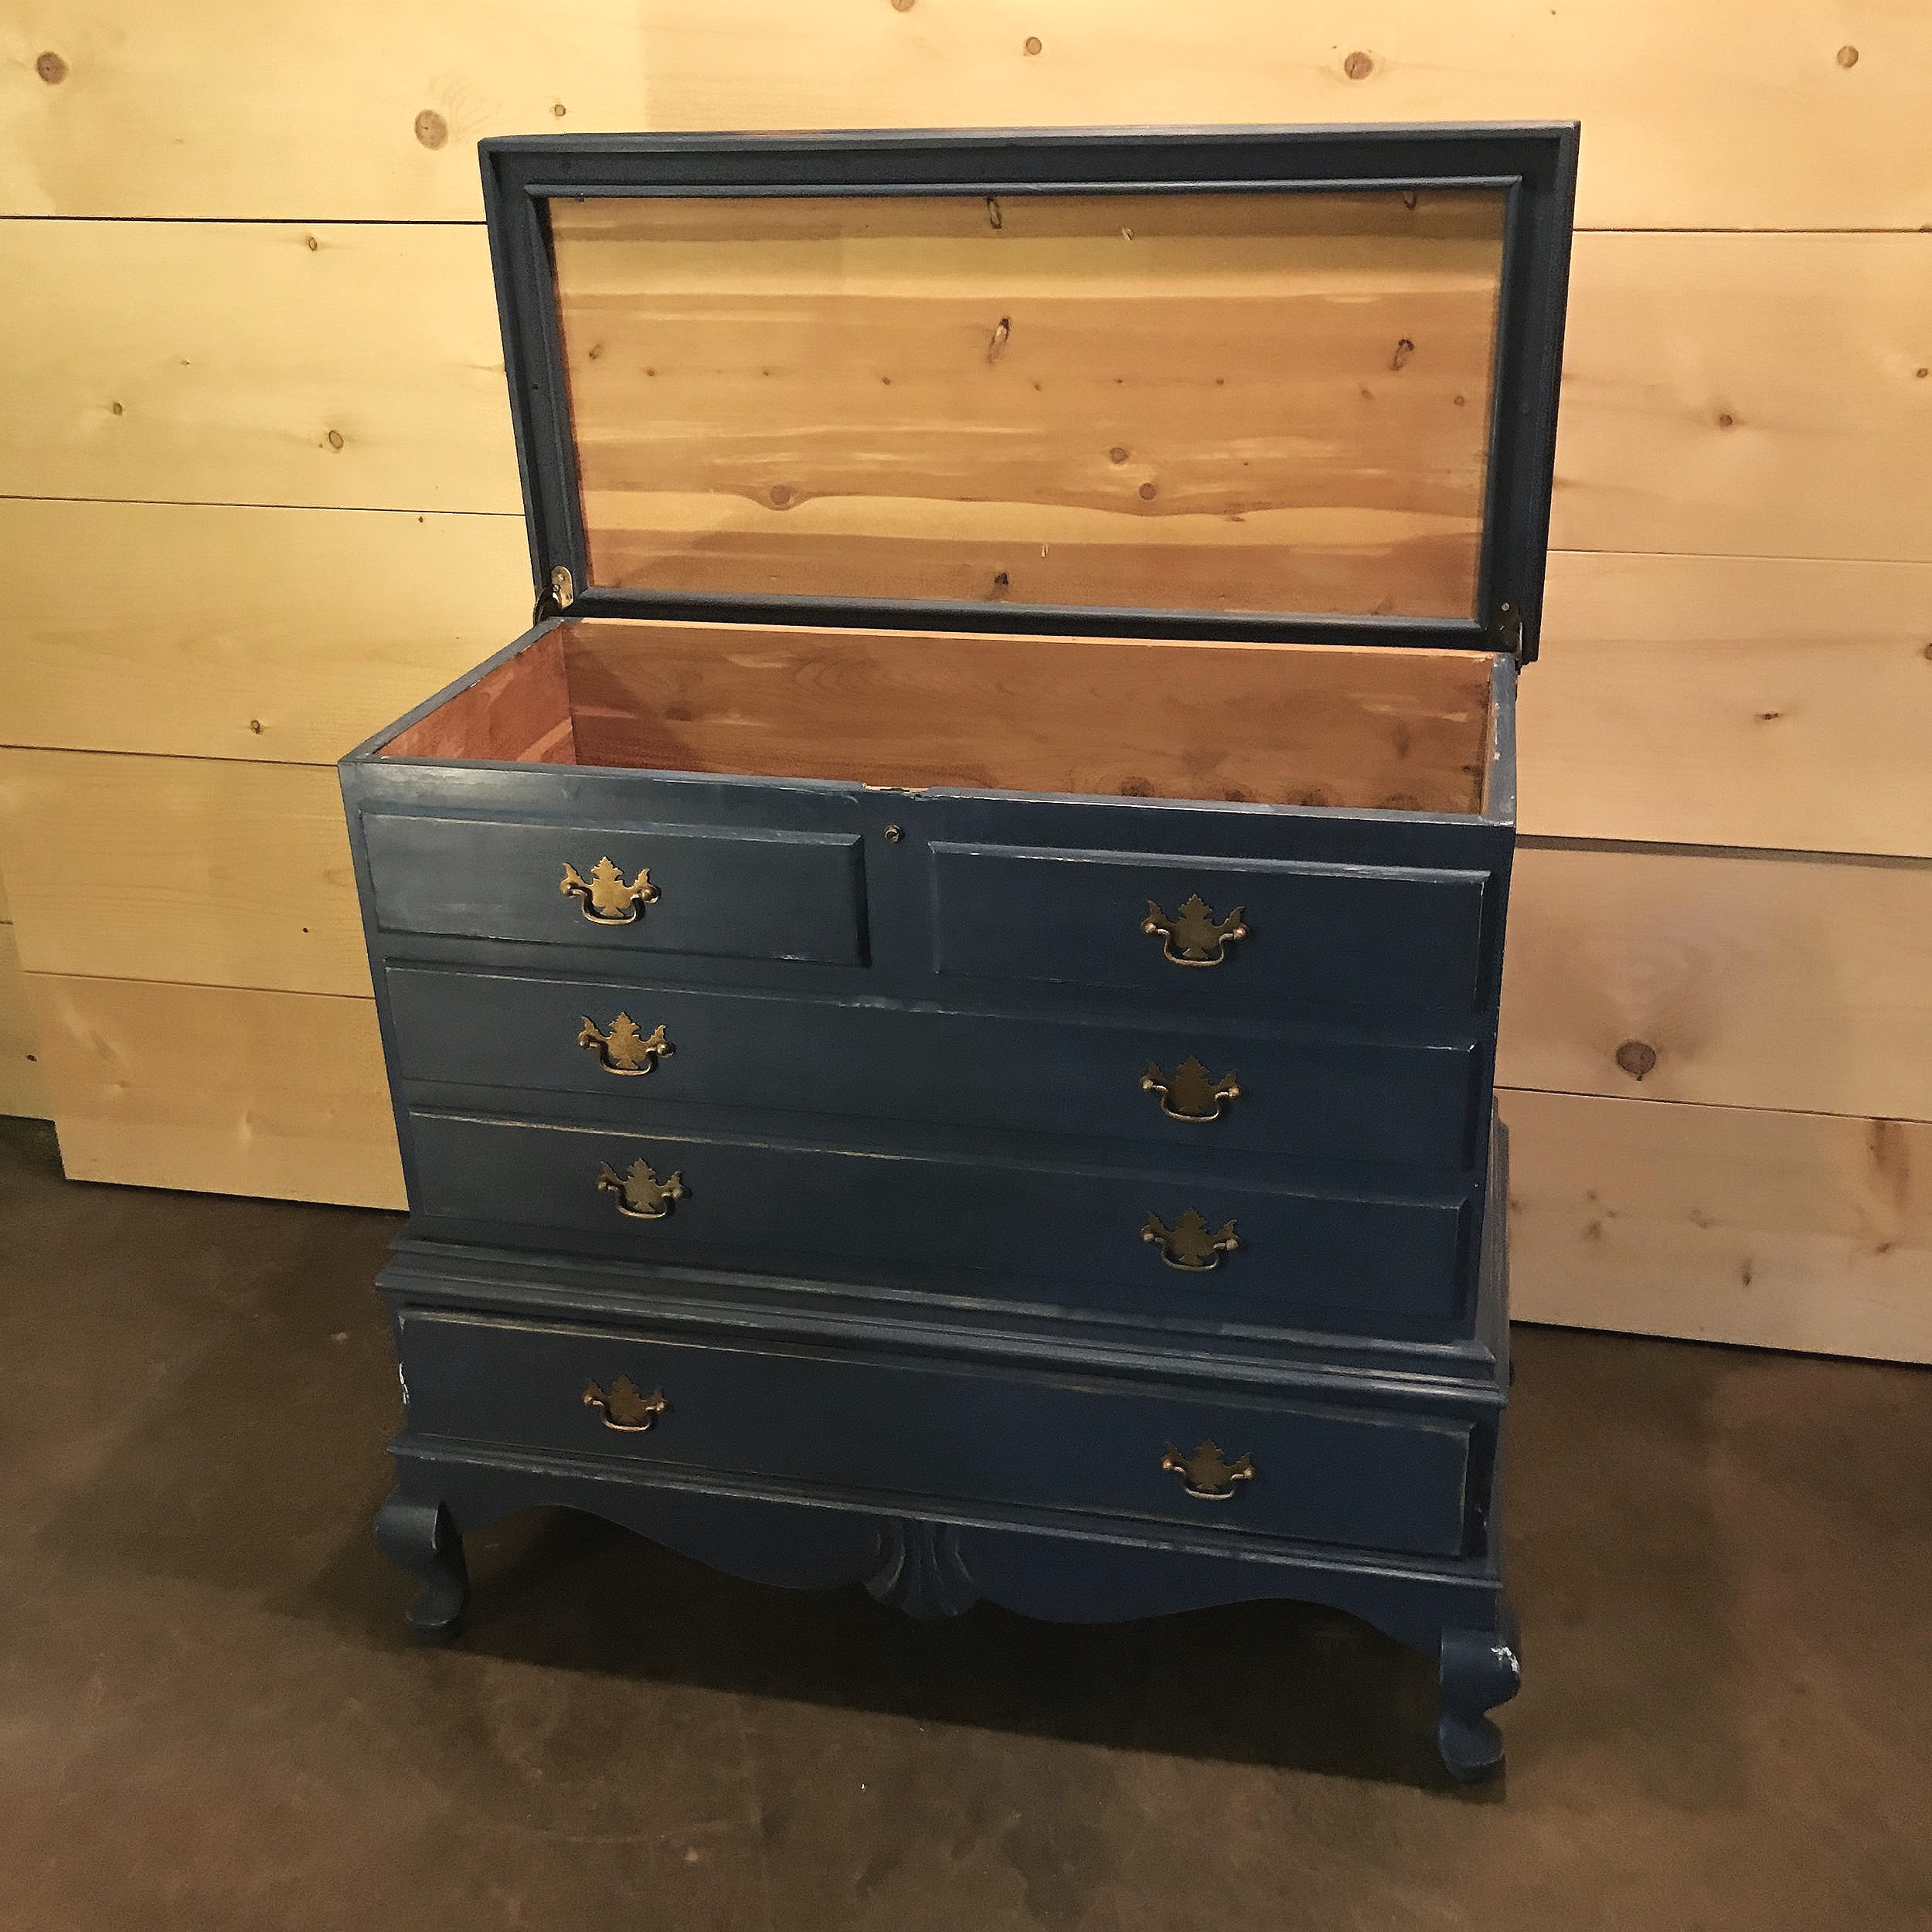 Chalk painted navy blue tall cedar chest with lid that opens.